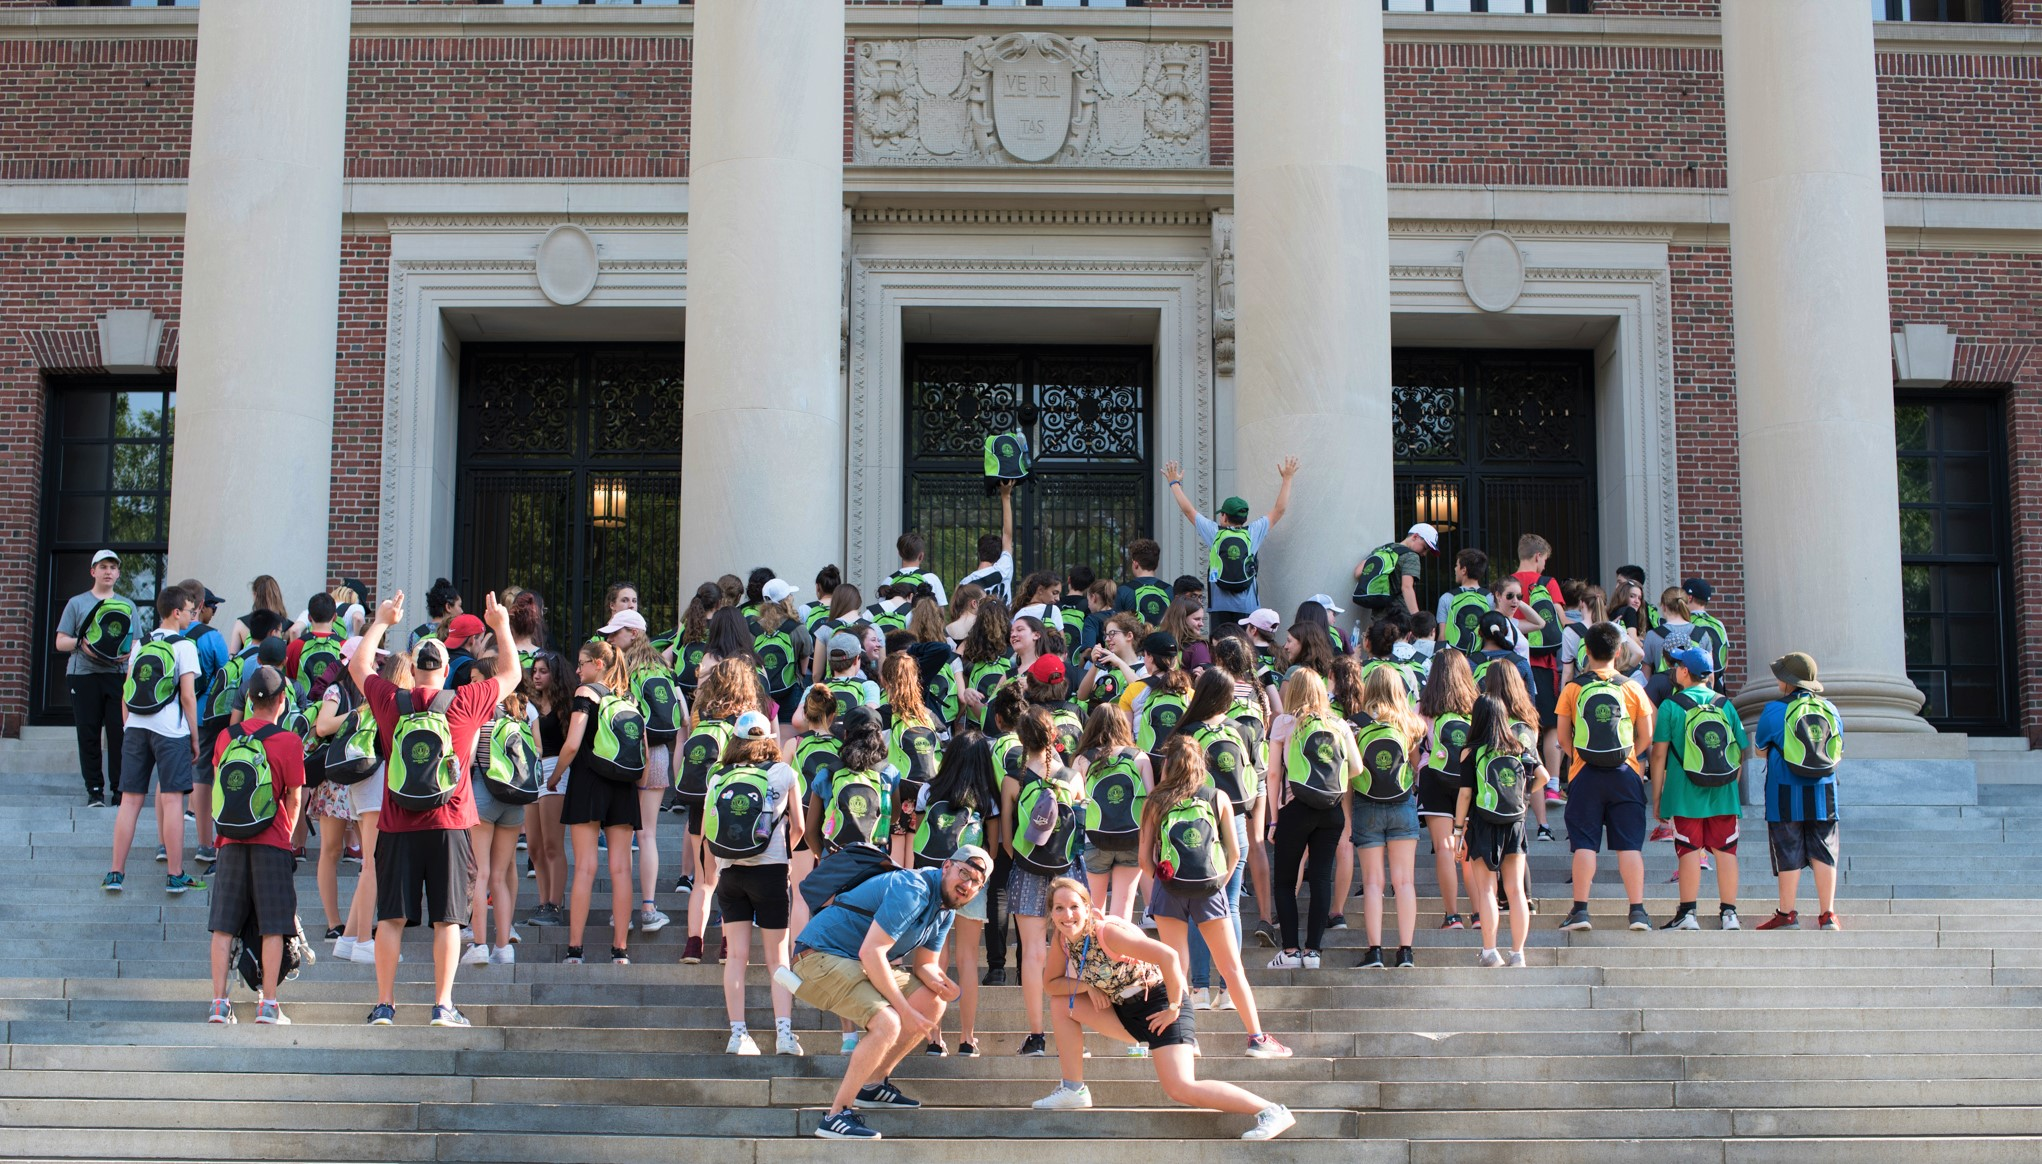 Group picture on the Harvard steps